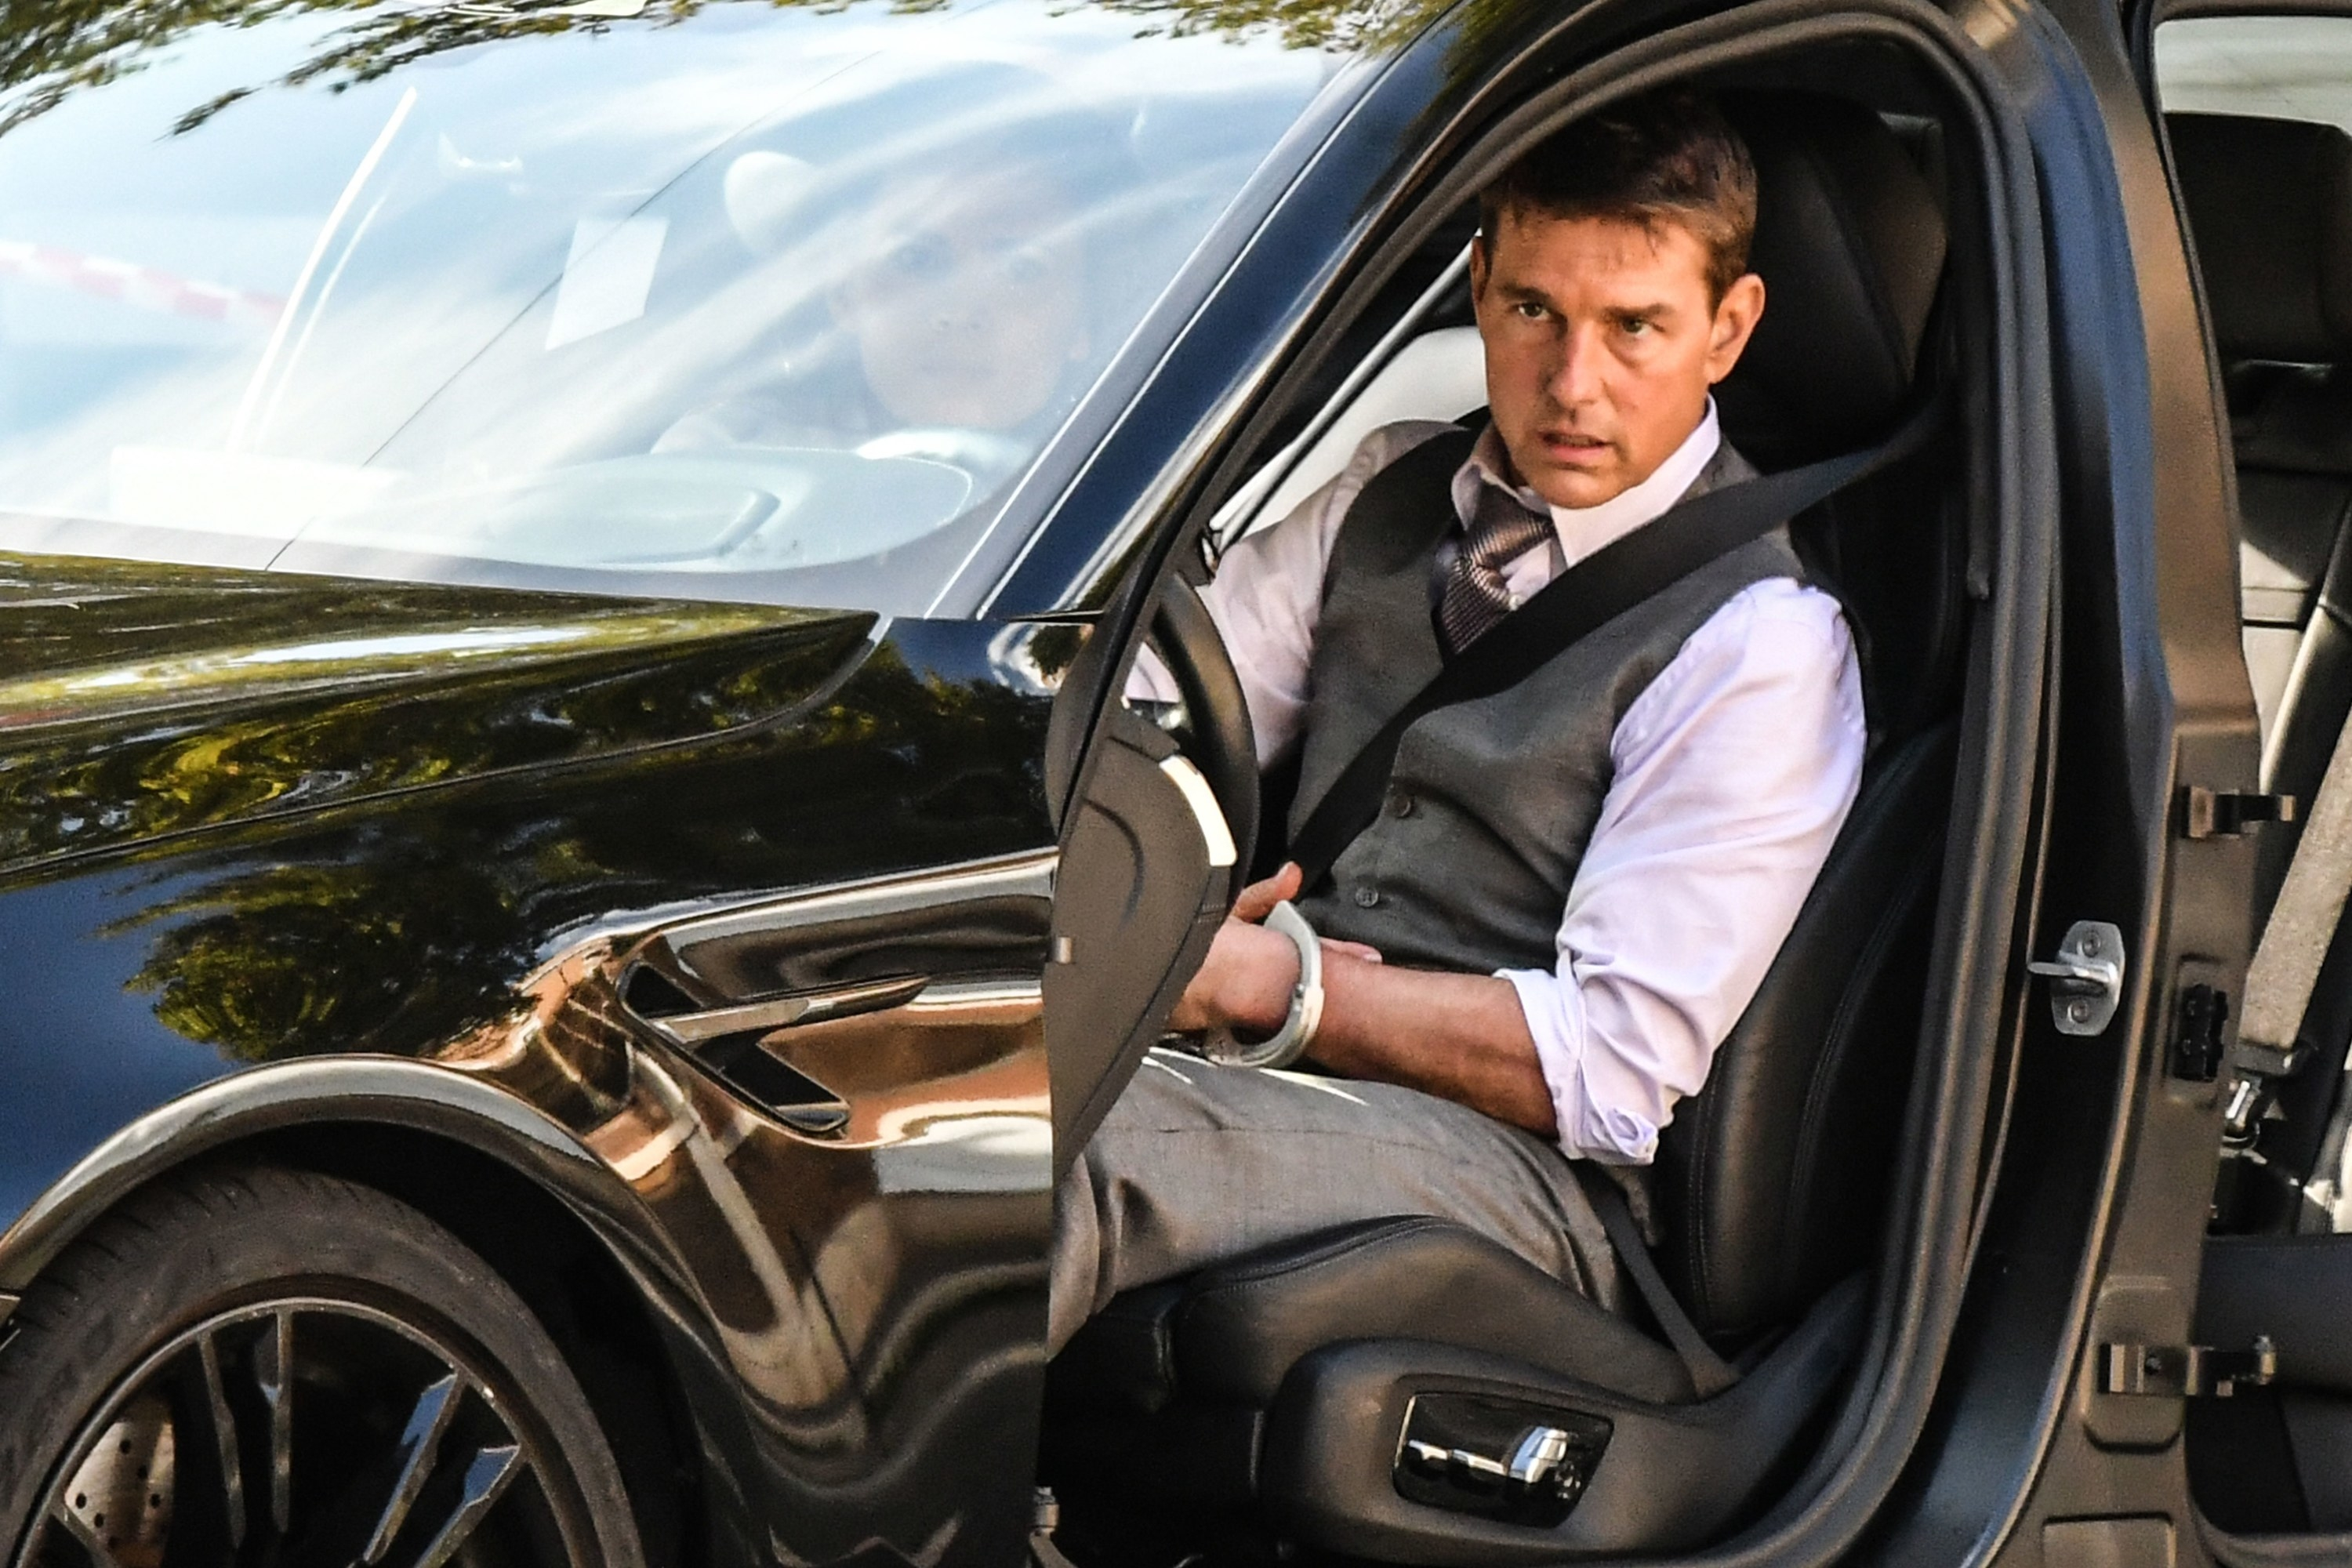 Tom looks serious while driving a car while filming